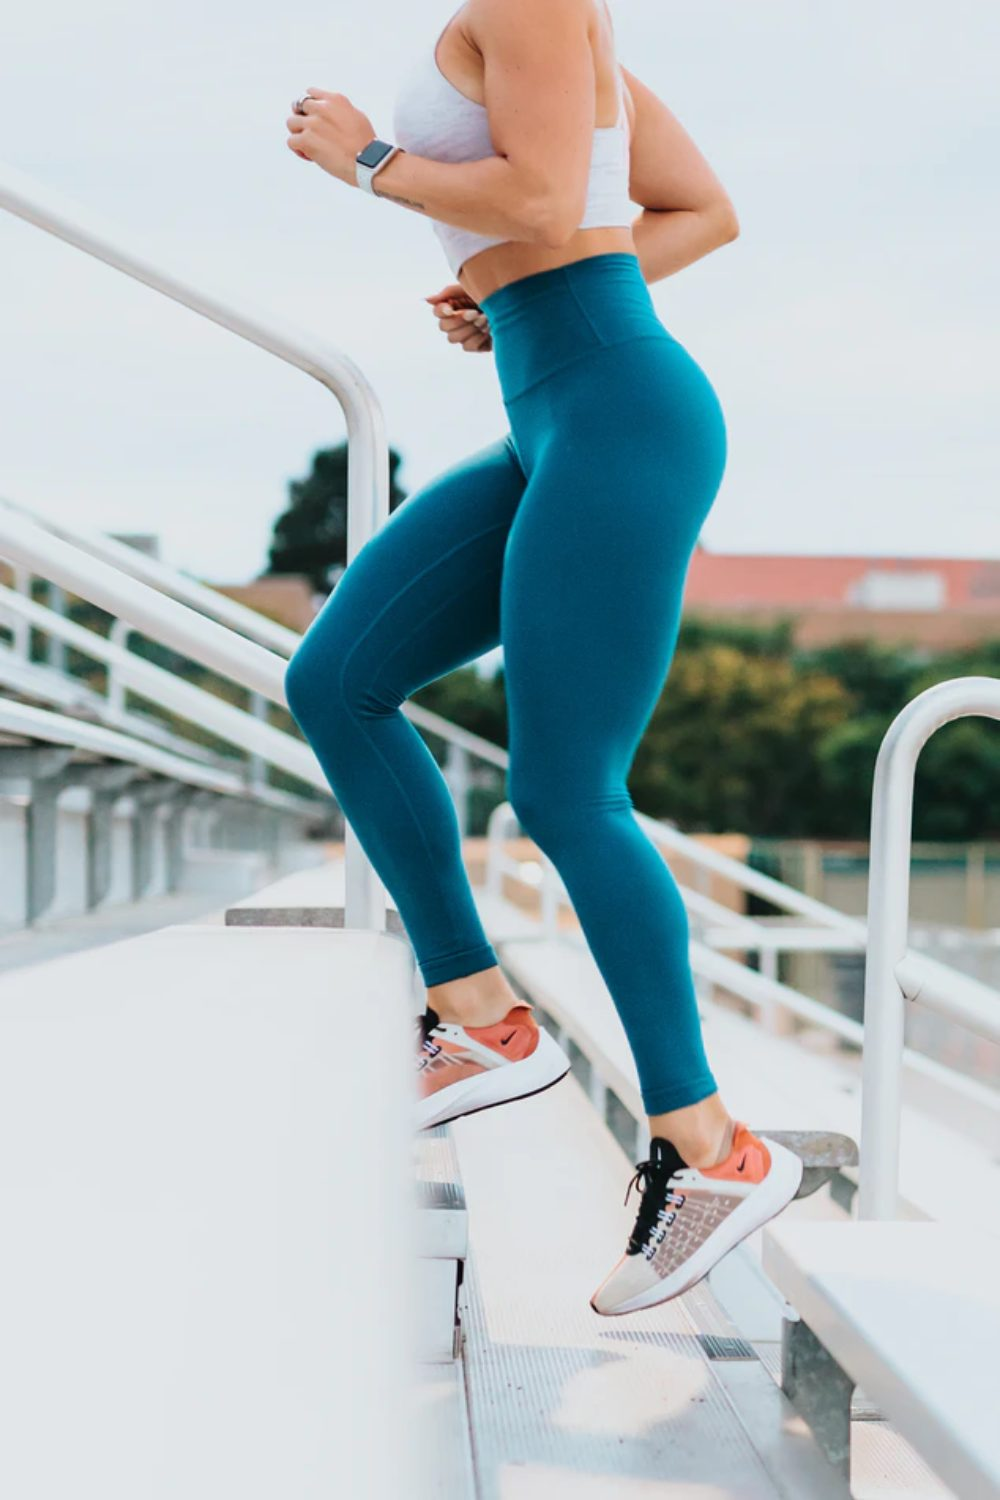 How to Get Back Into Workout Out after a Break